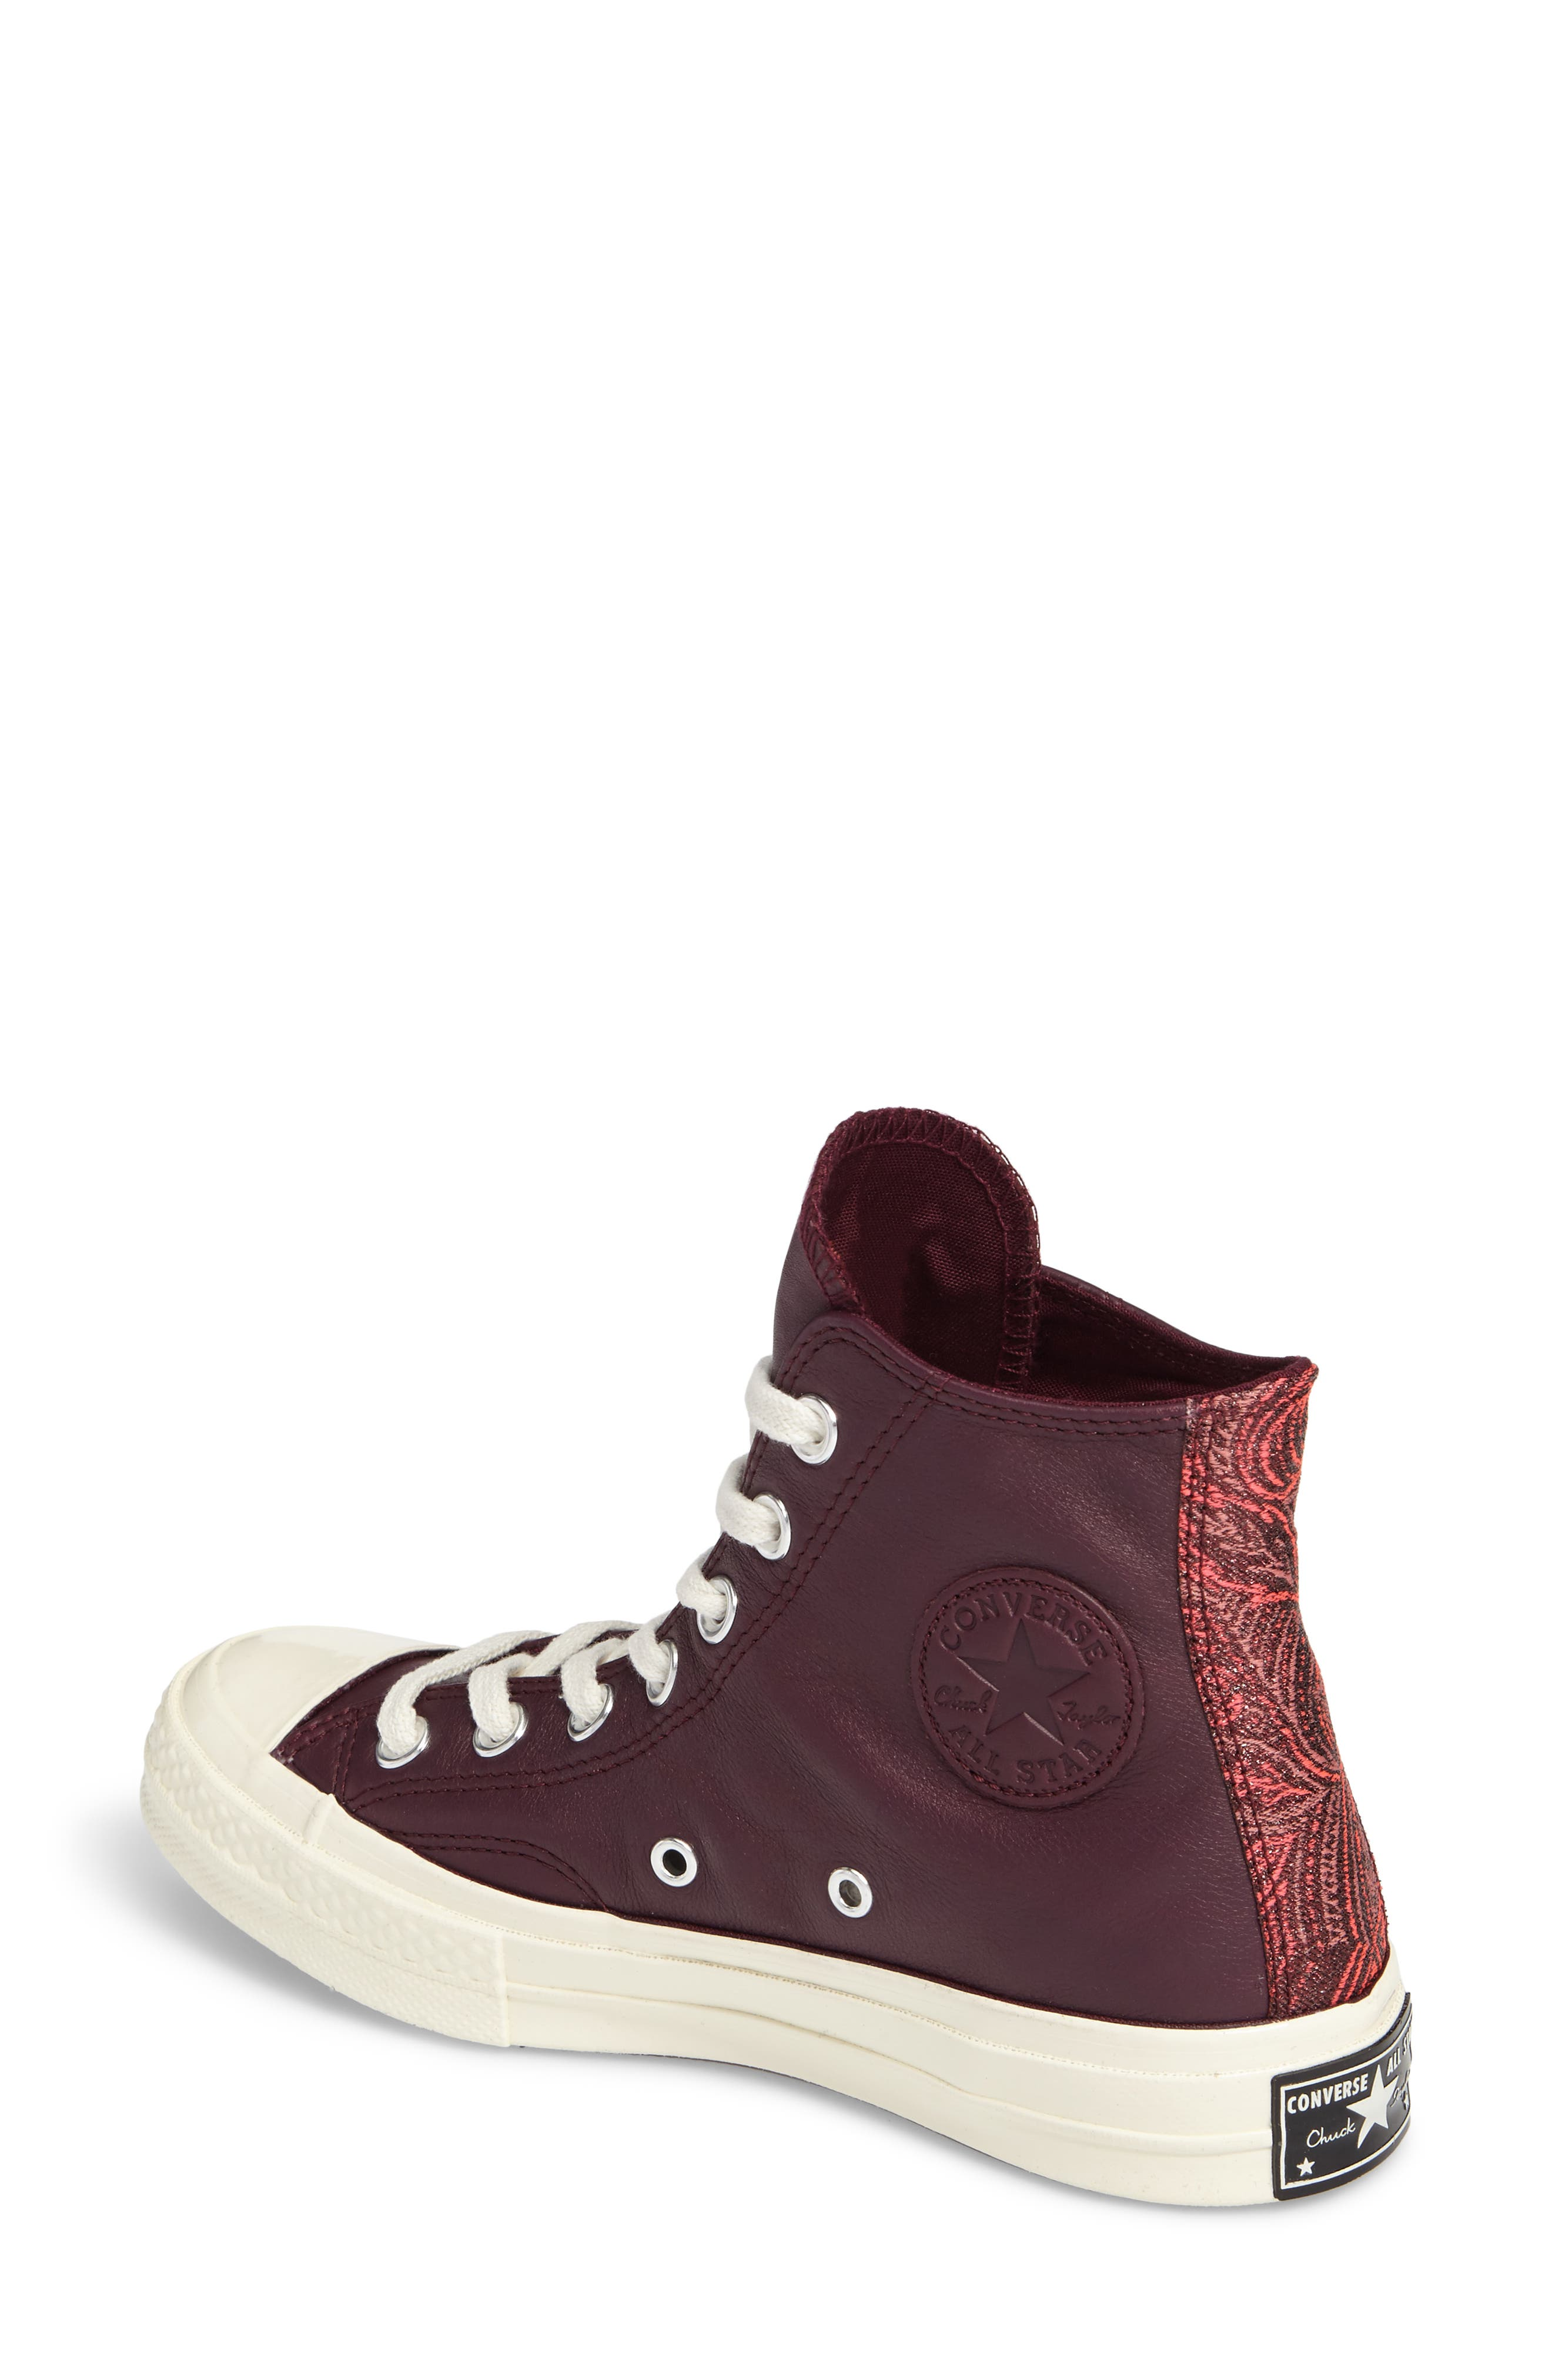 Alternate Image 2  - Converse Chuck Taylor® All Star® 70 High Top Sneaker (Women)